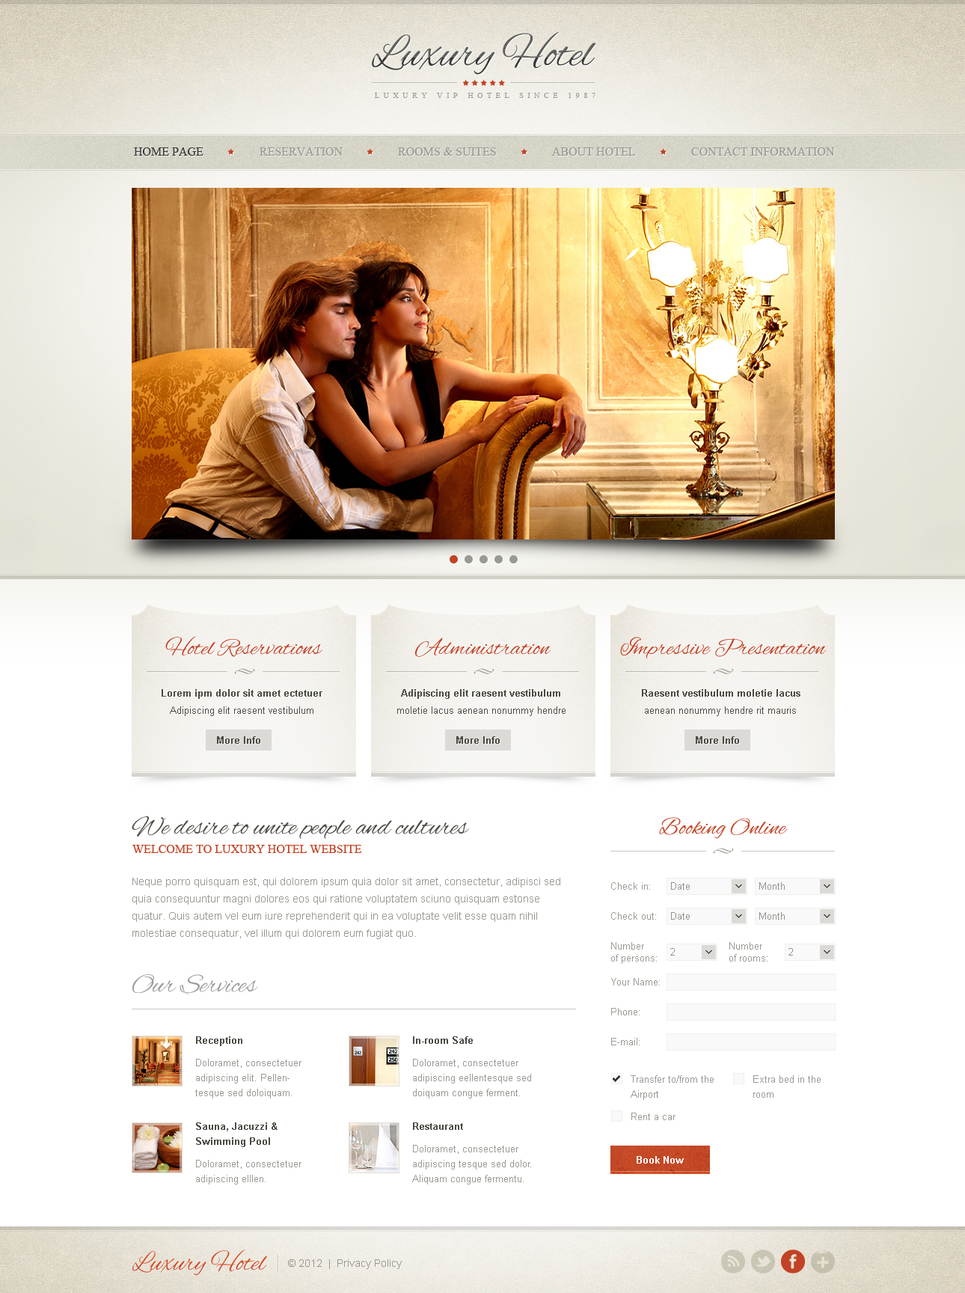 Hotel Website Template Done in Pastel Colors - image